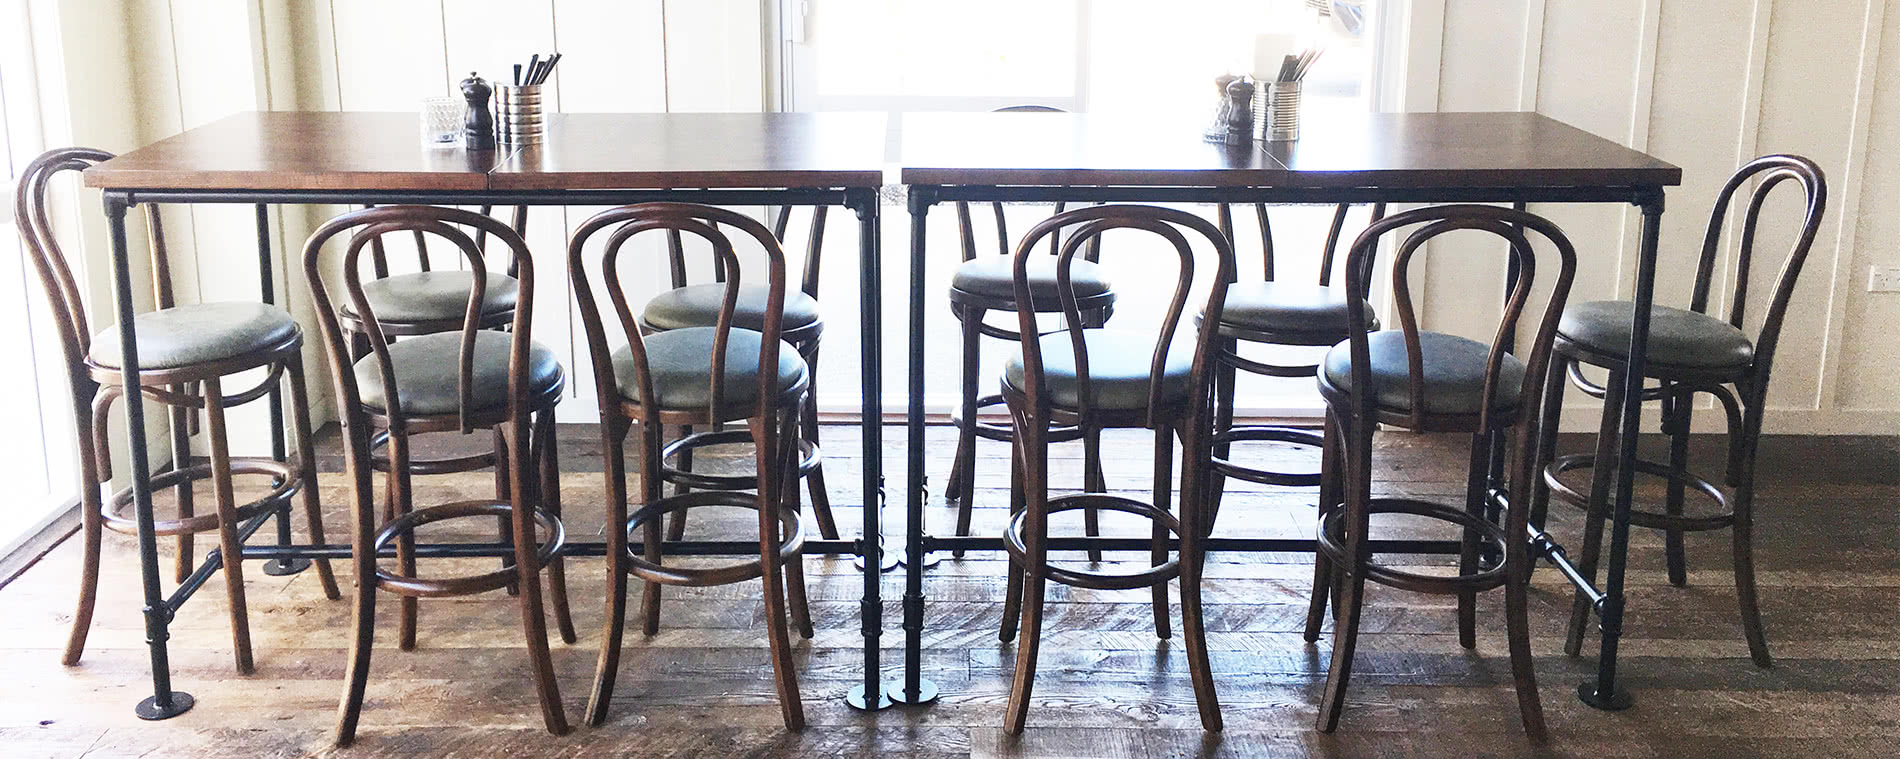 Furniture Provided for Riverhead Restaurant includes rustic tables and chairs